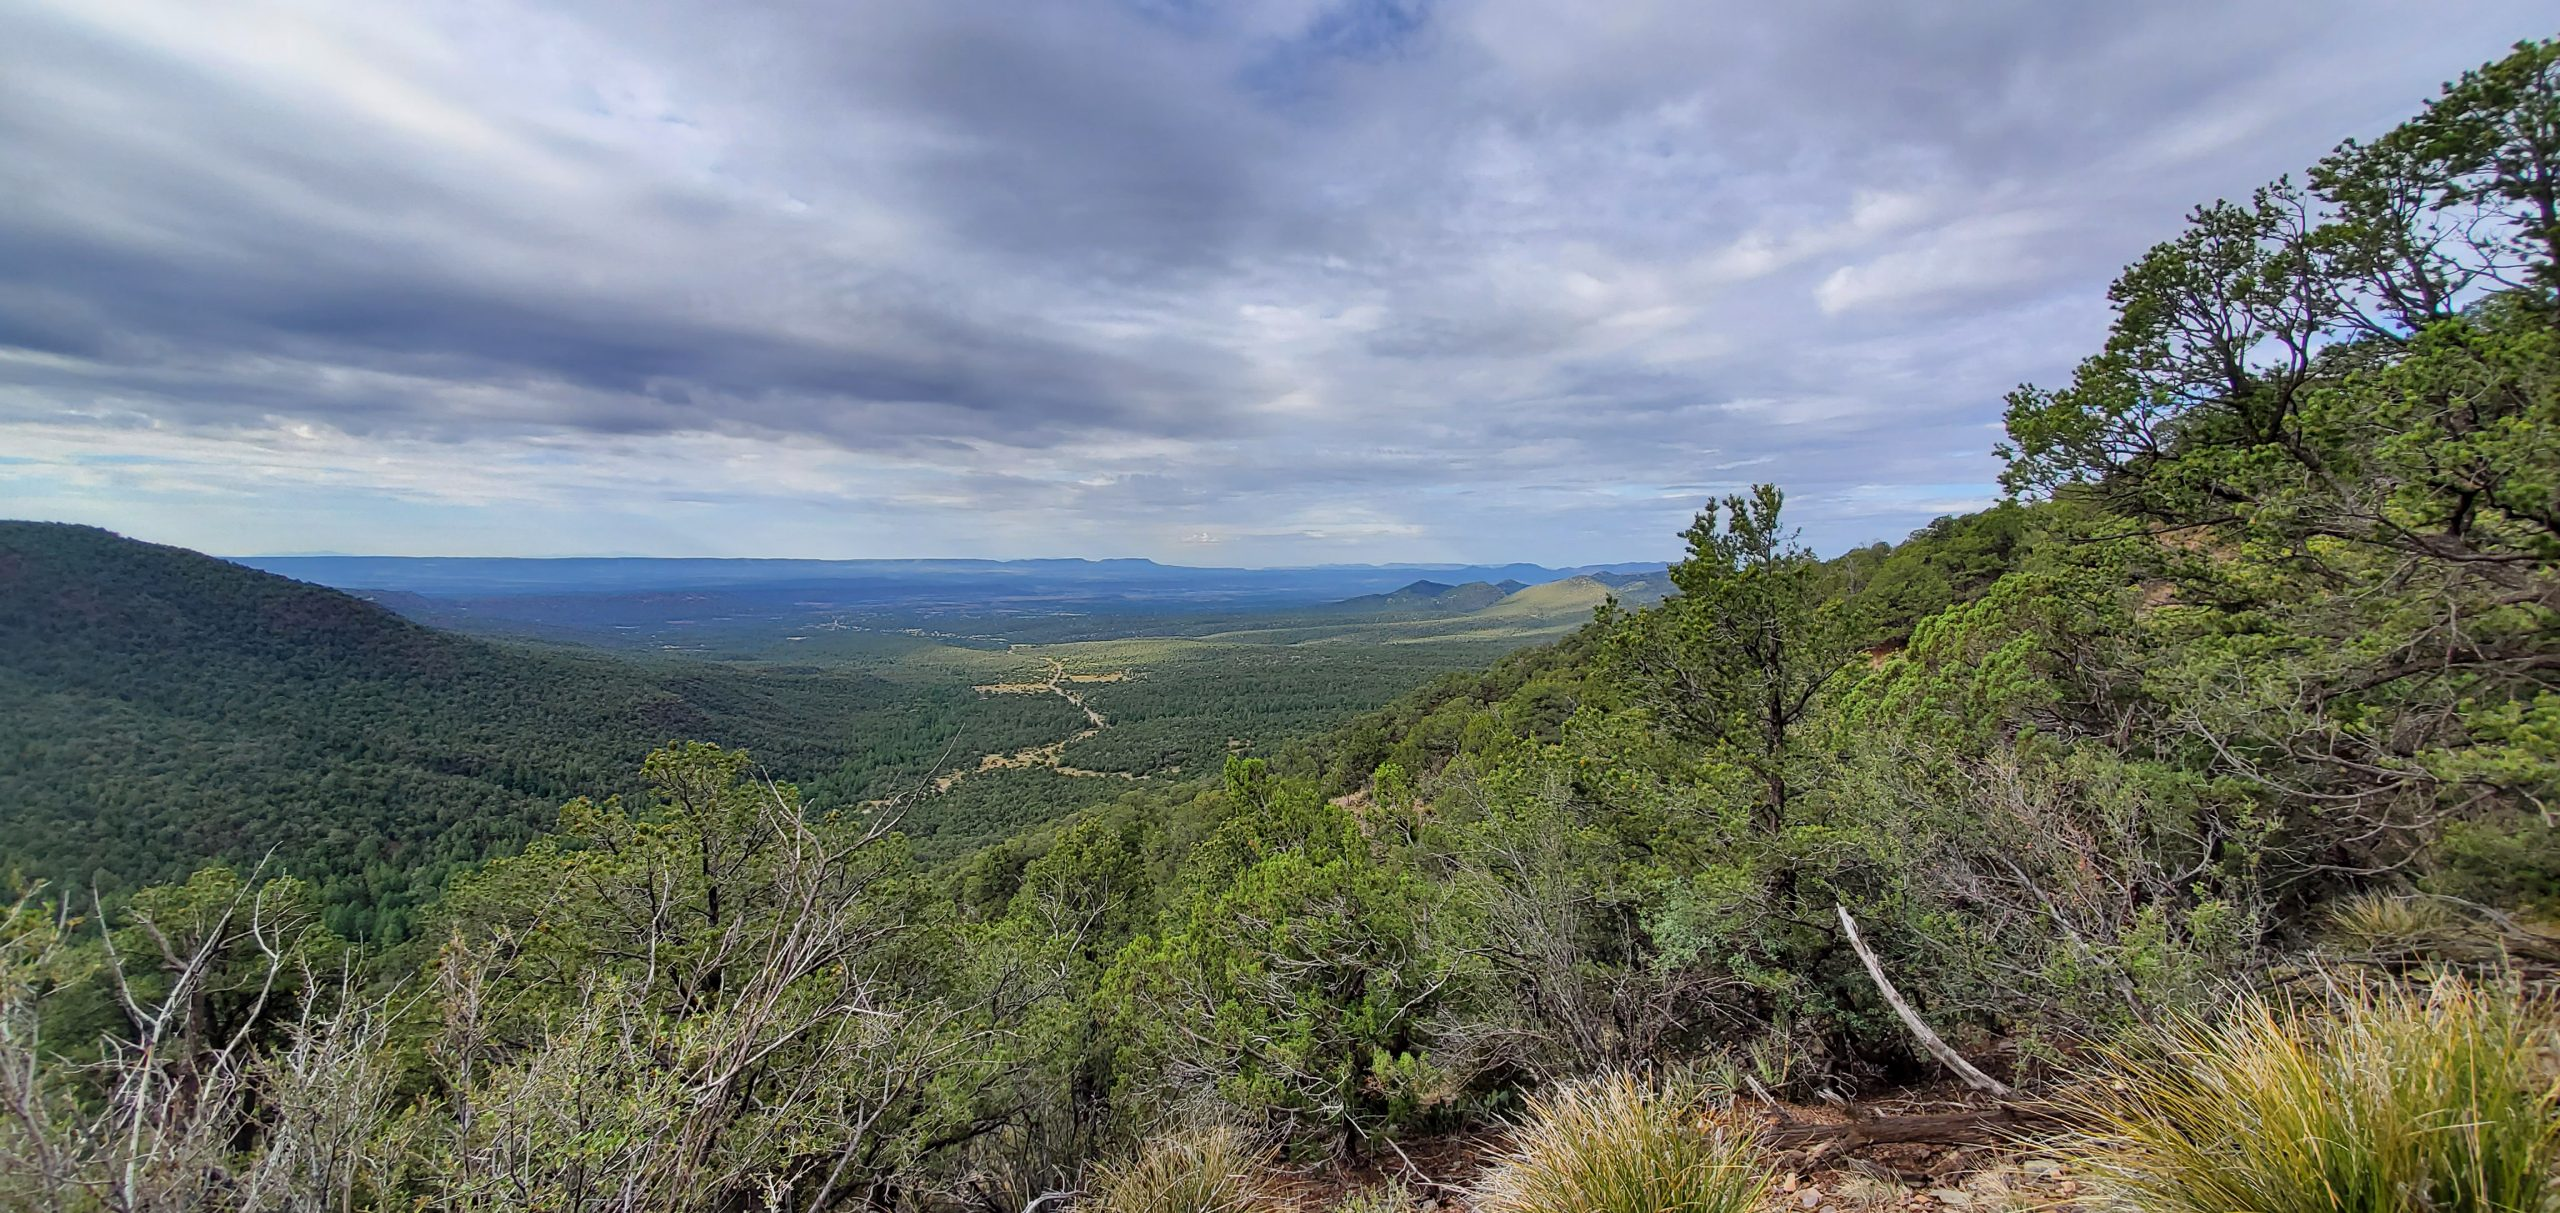 New Mexico Wild: House Budget Makes Positive Gains, But More Needs to be Done to Close Funding Gap for Environmental Agencies